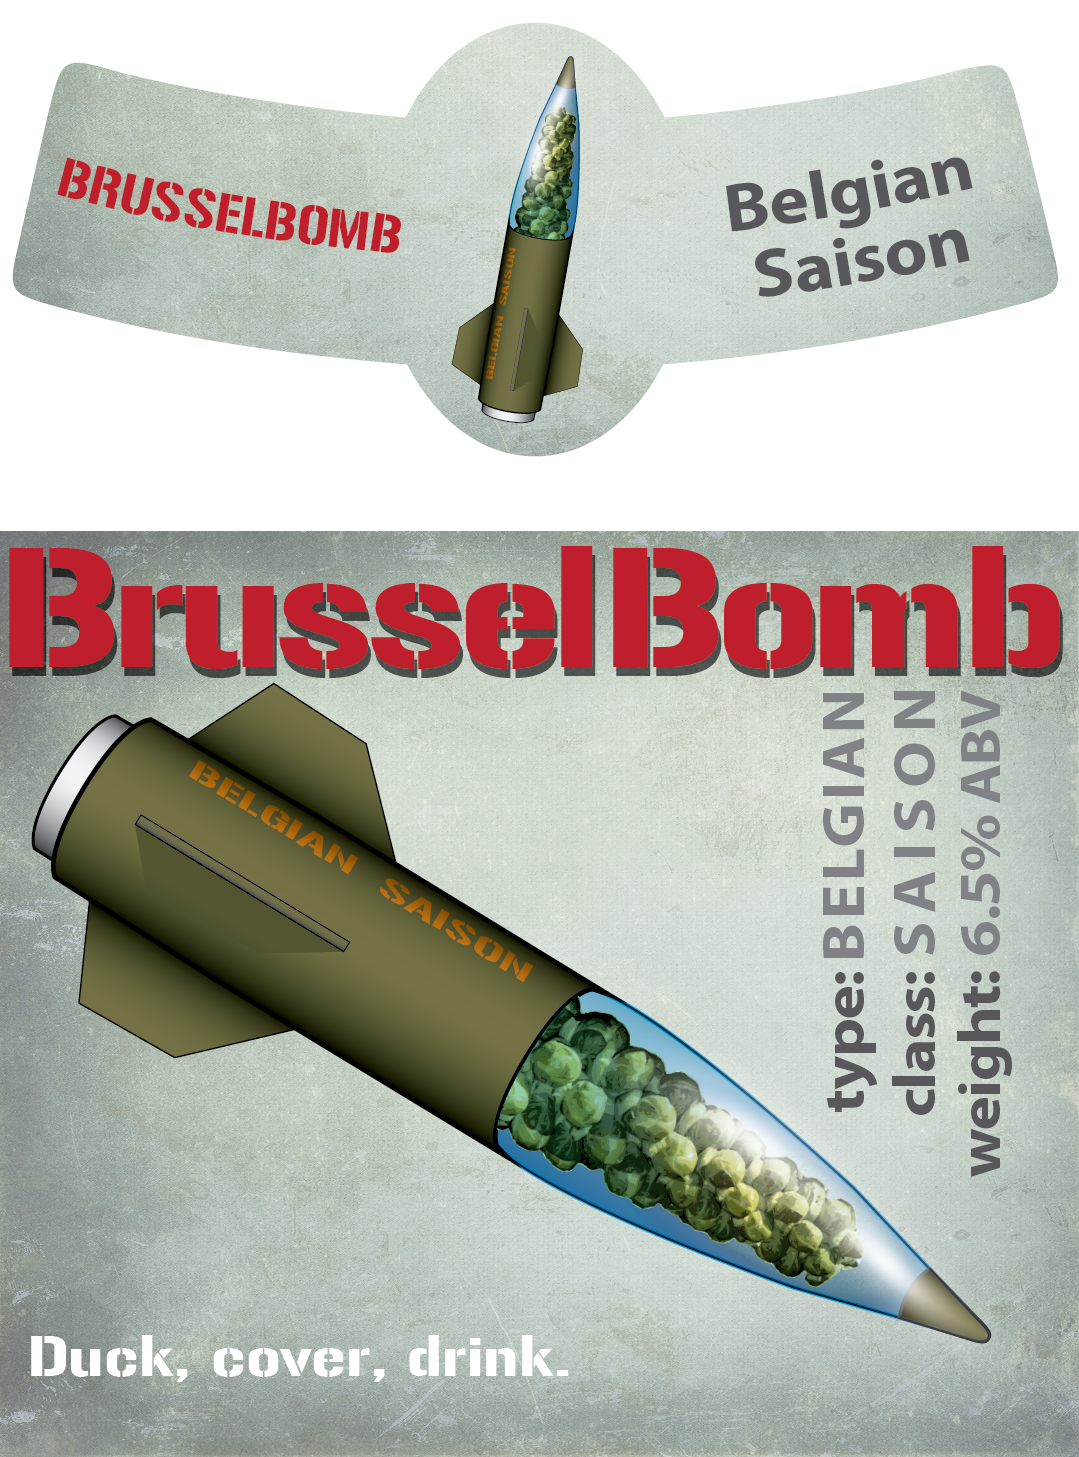 BrusselBomb Beer Label